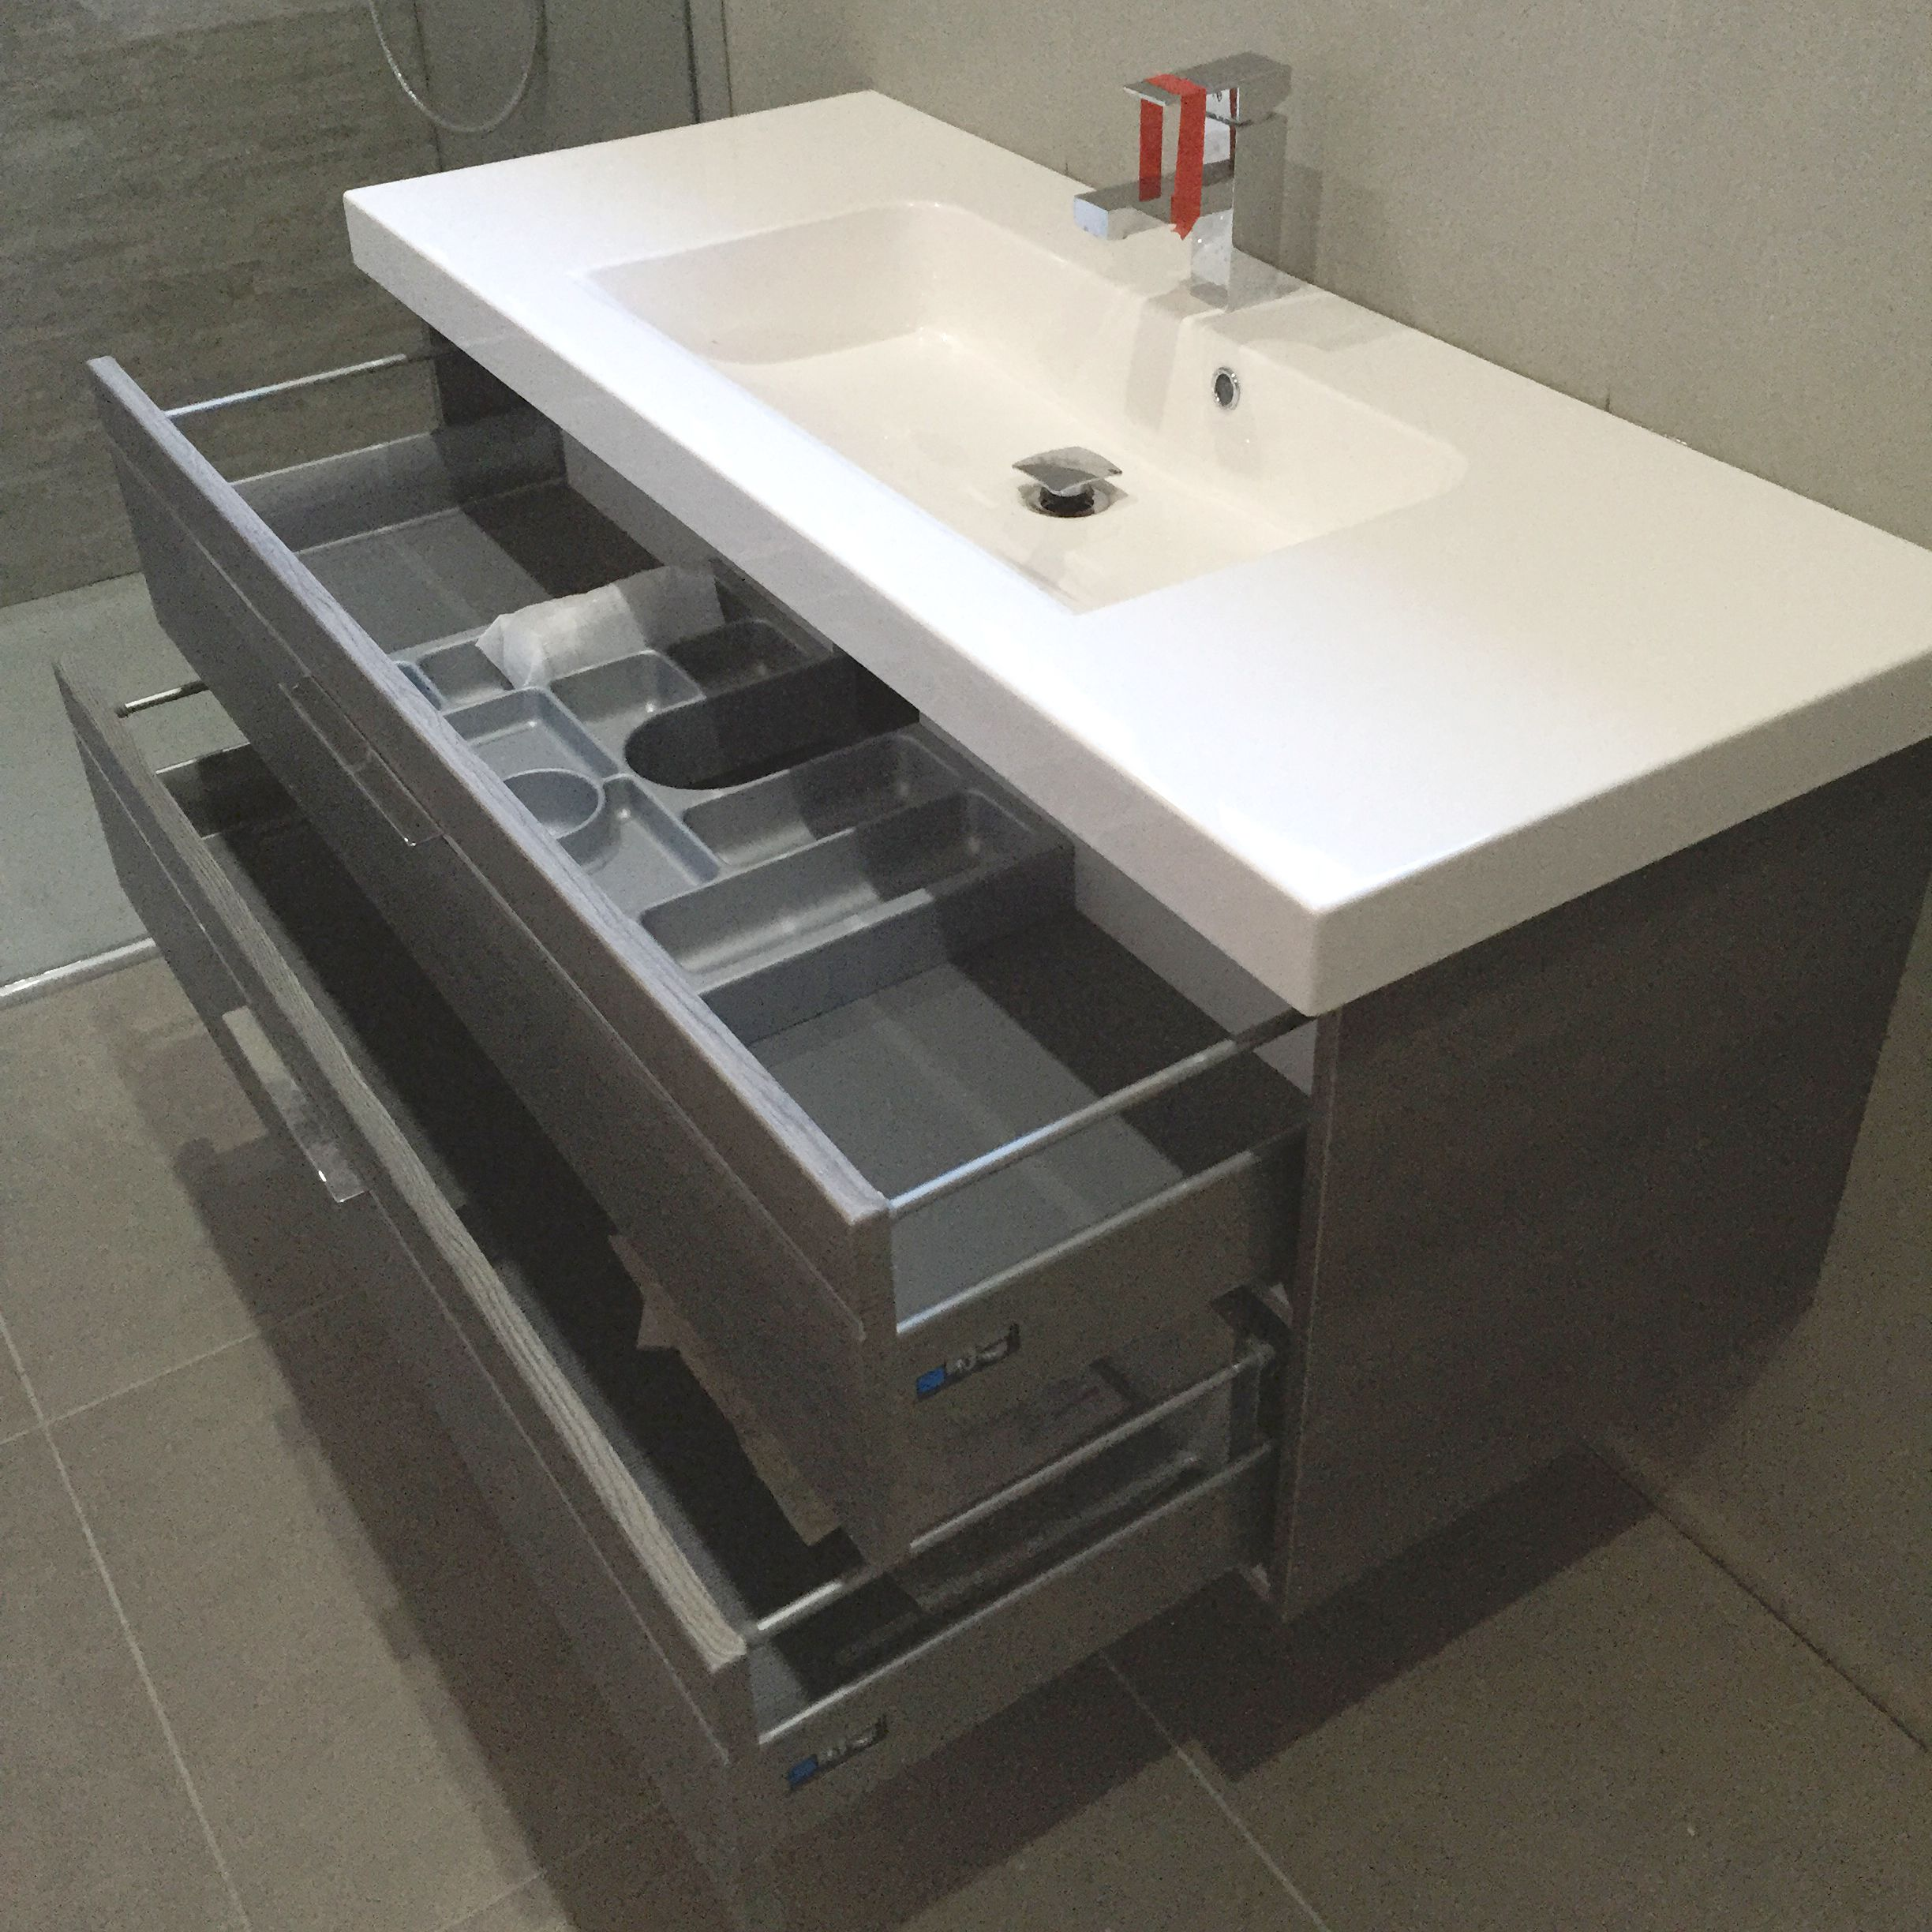 Pelipal basin & vanity unit with internal storage | Bathroom ...